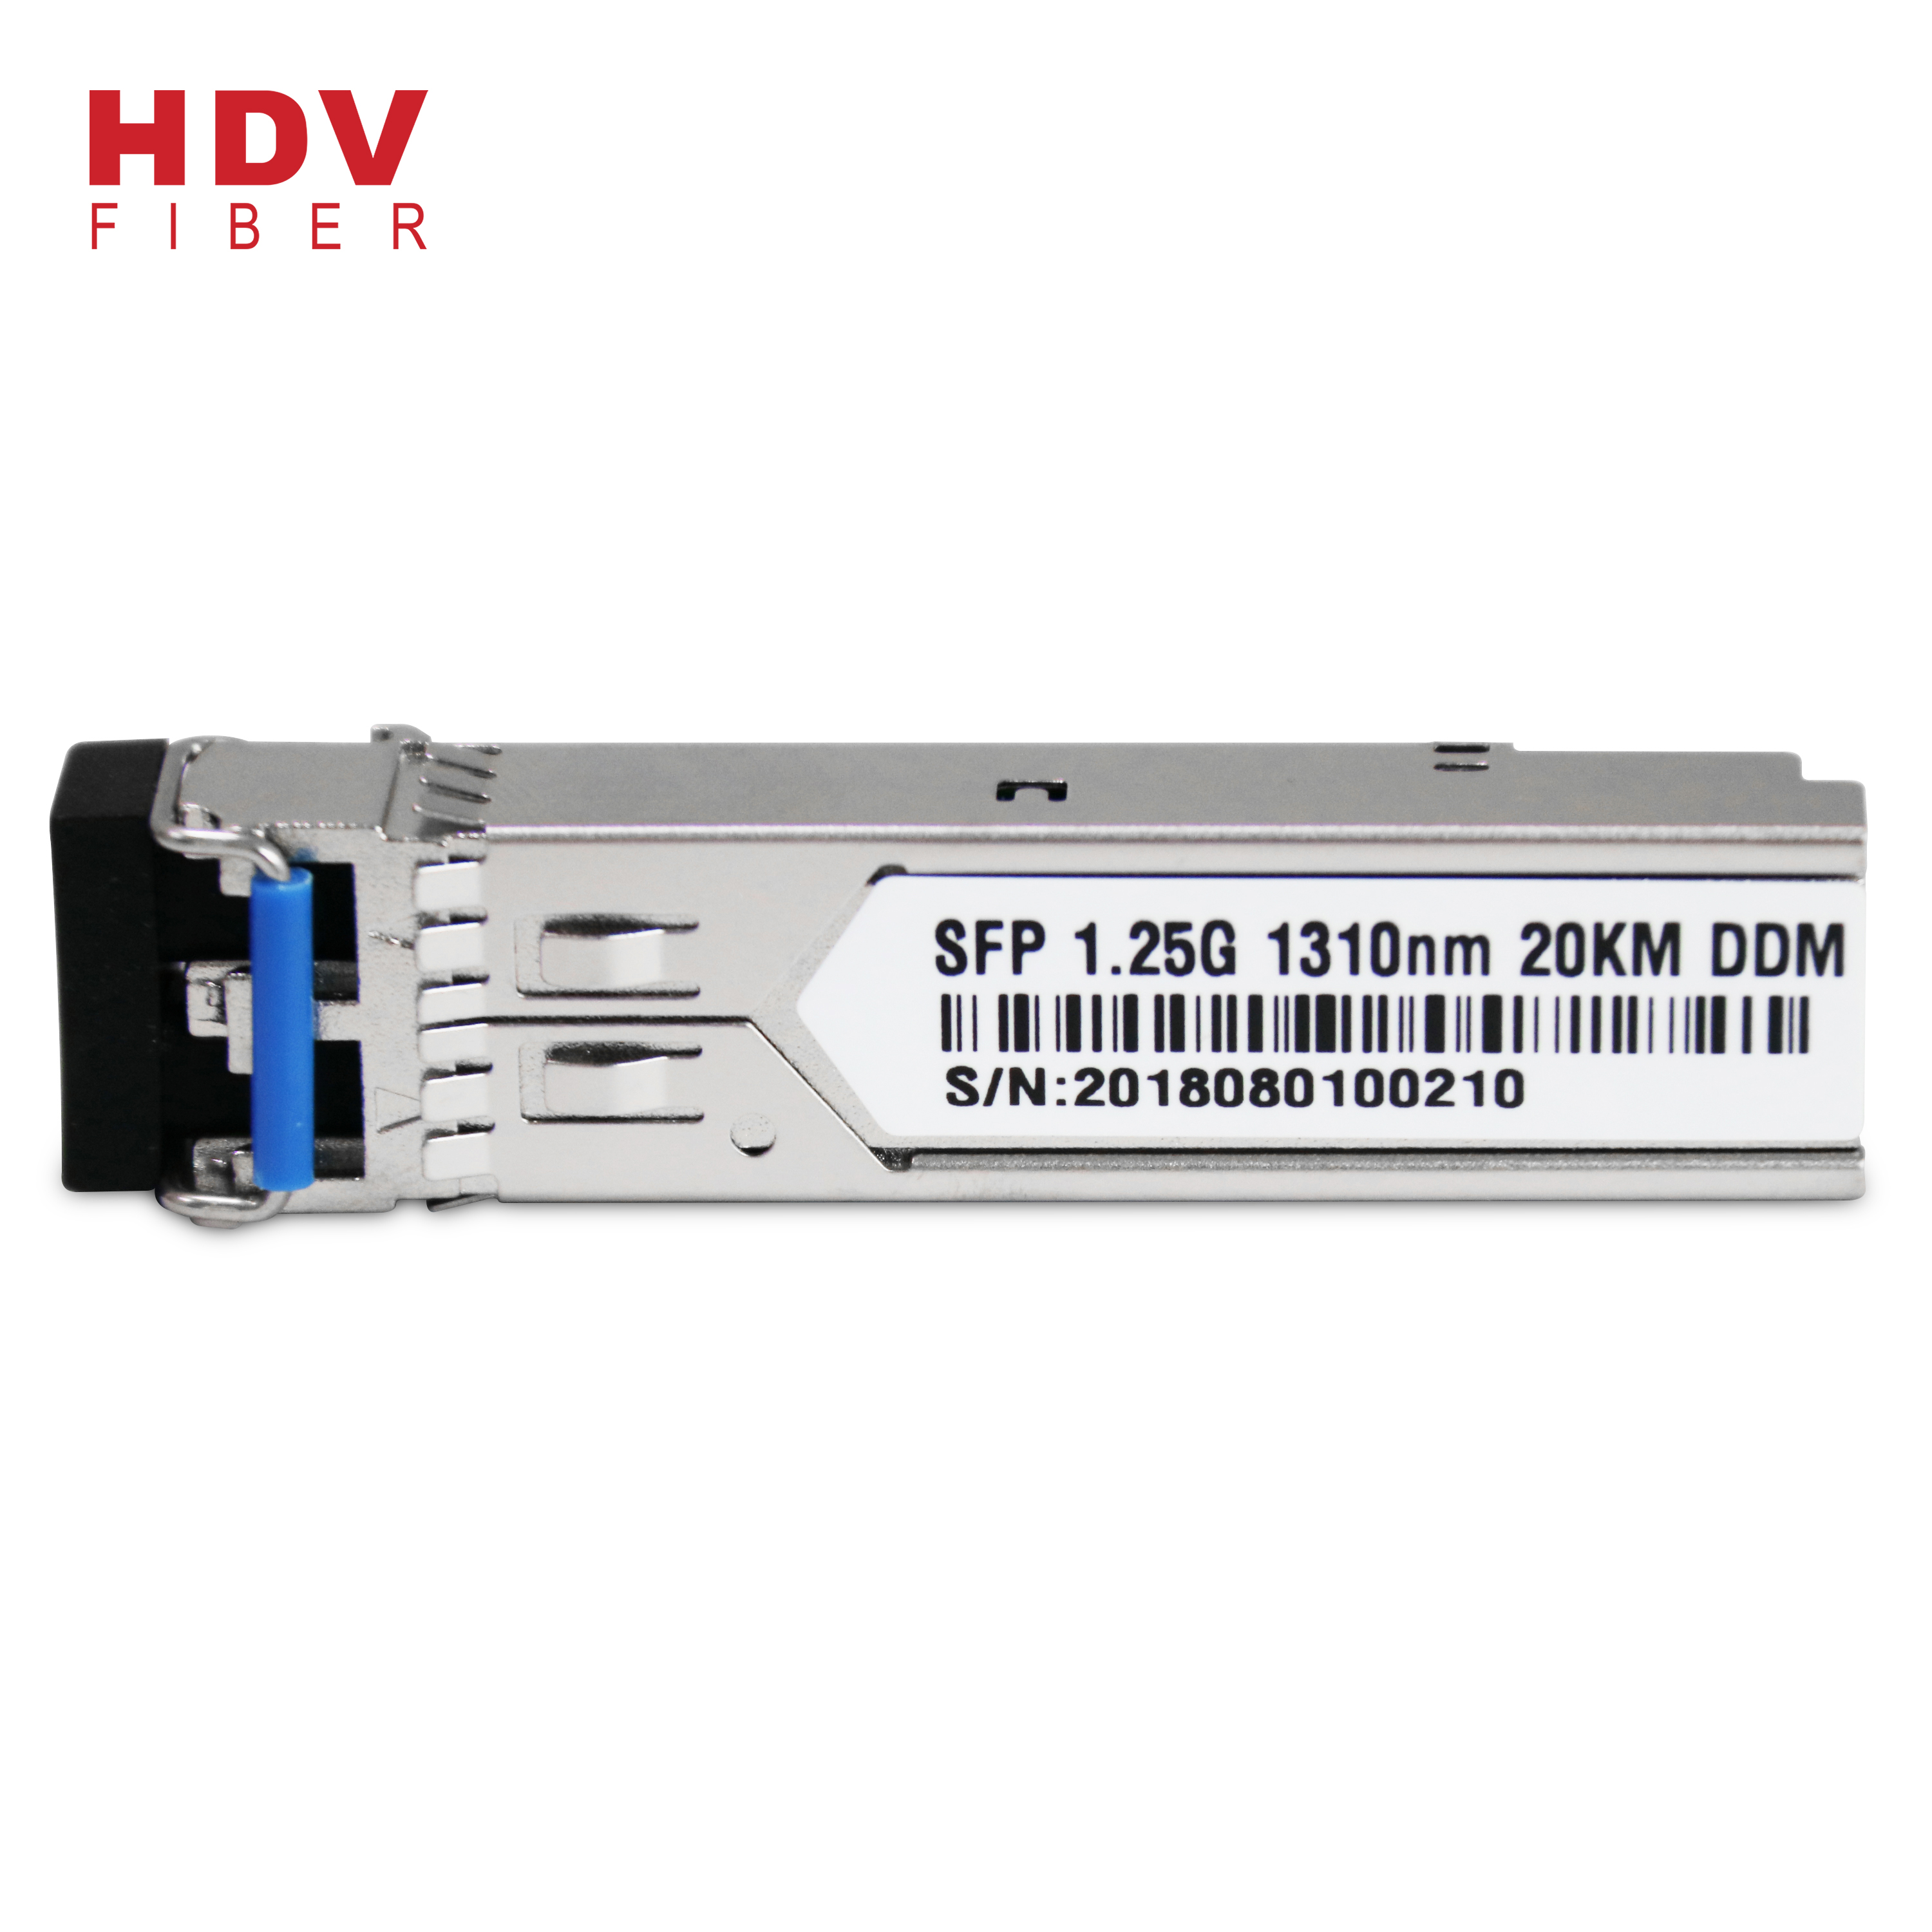 Factory Price For 40km Optic Module - 1.25G 20KM 1310nm Dual Fiber Single mode SFP module – HDV